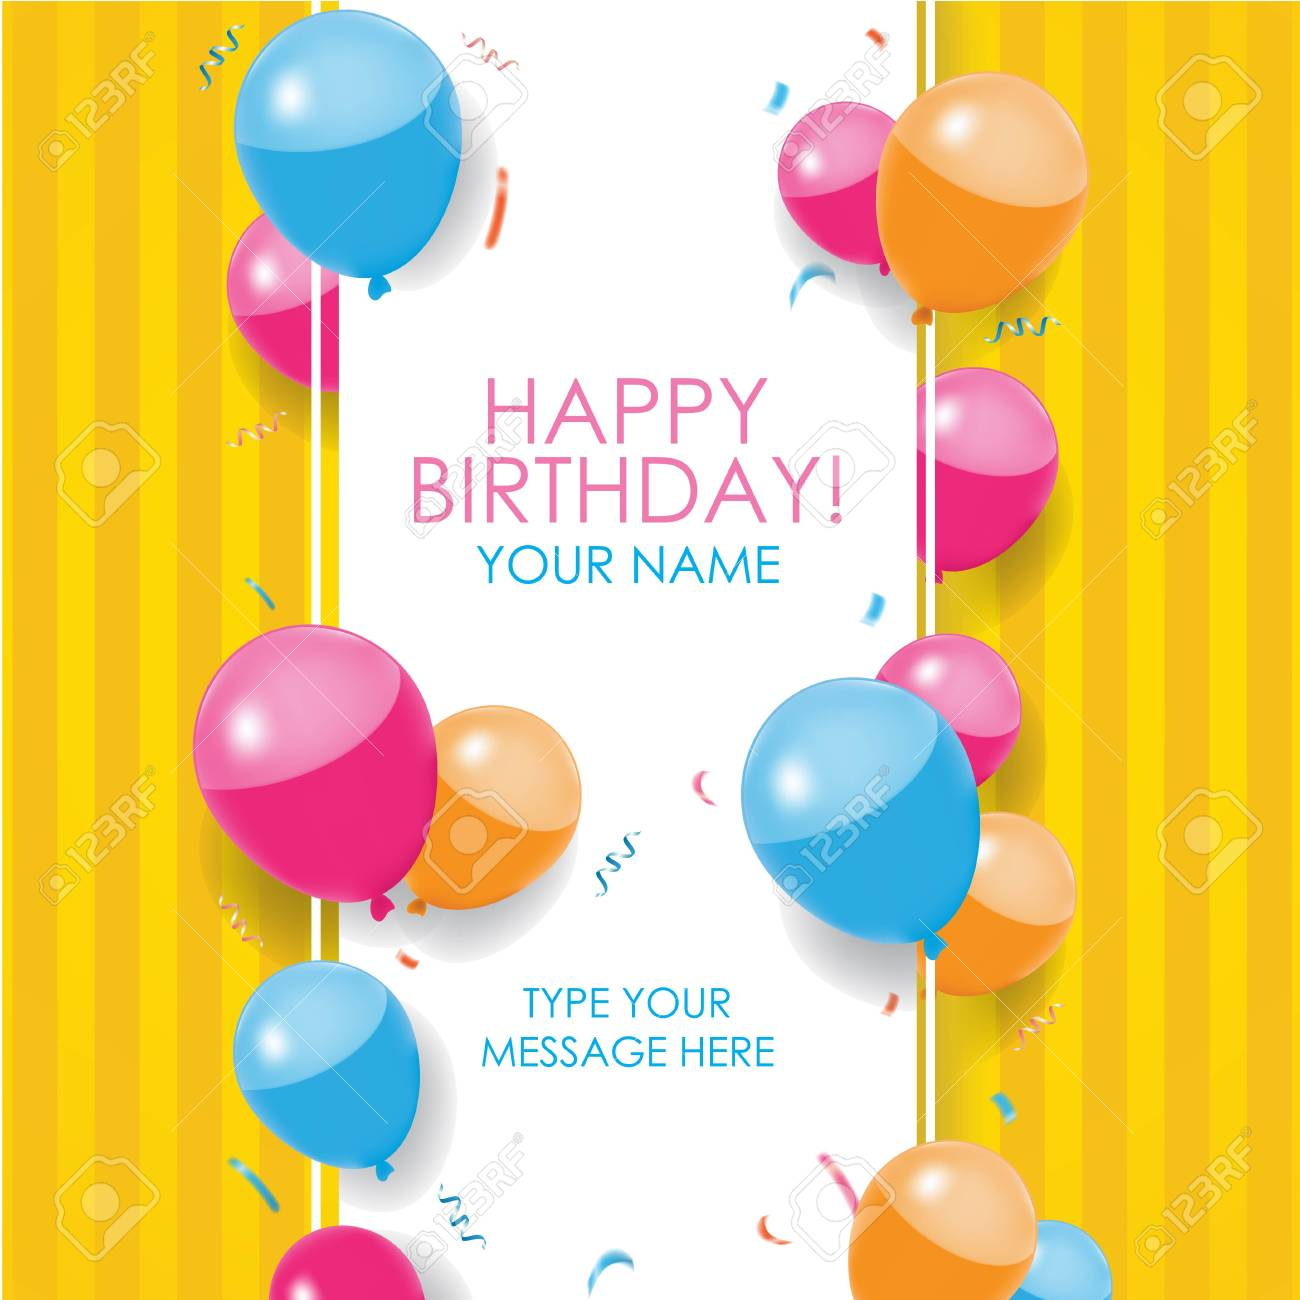 Happy Birthday Card with balloons, confettis, and stripes yellow..